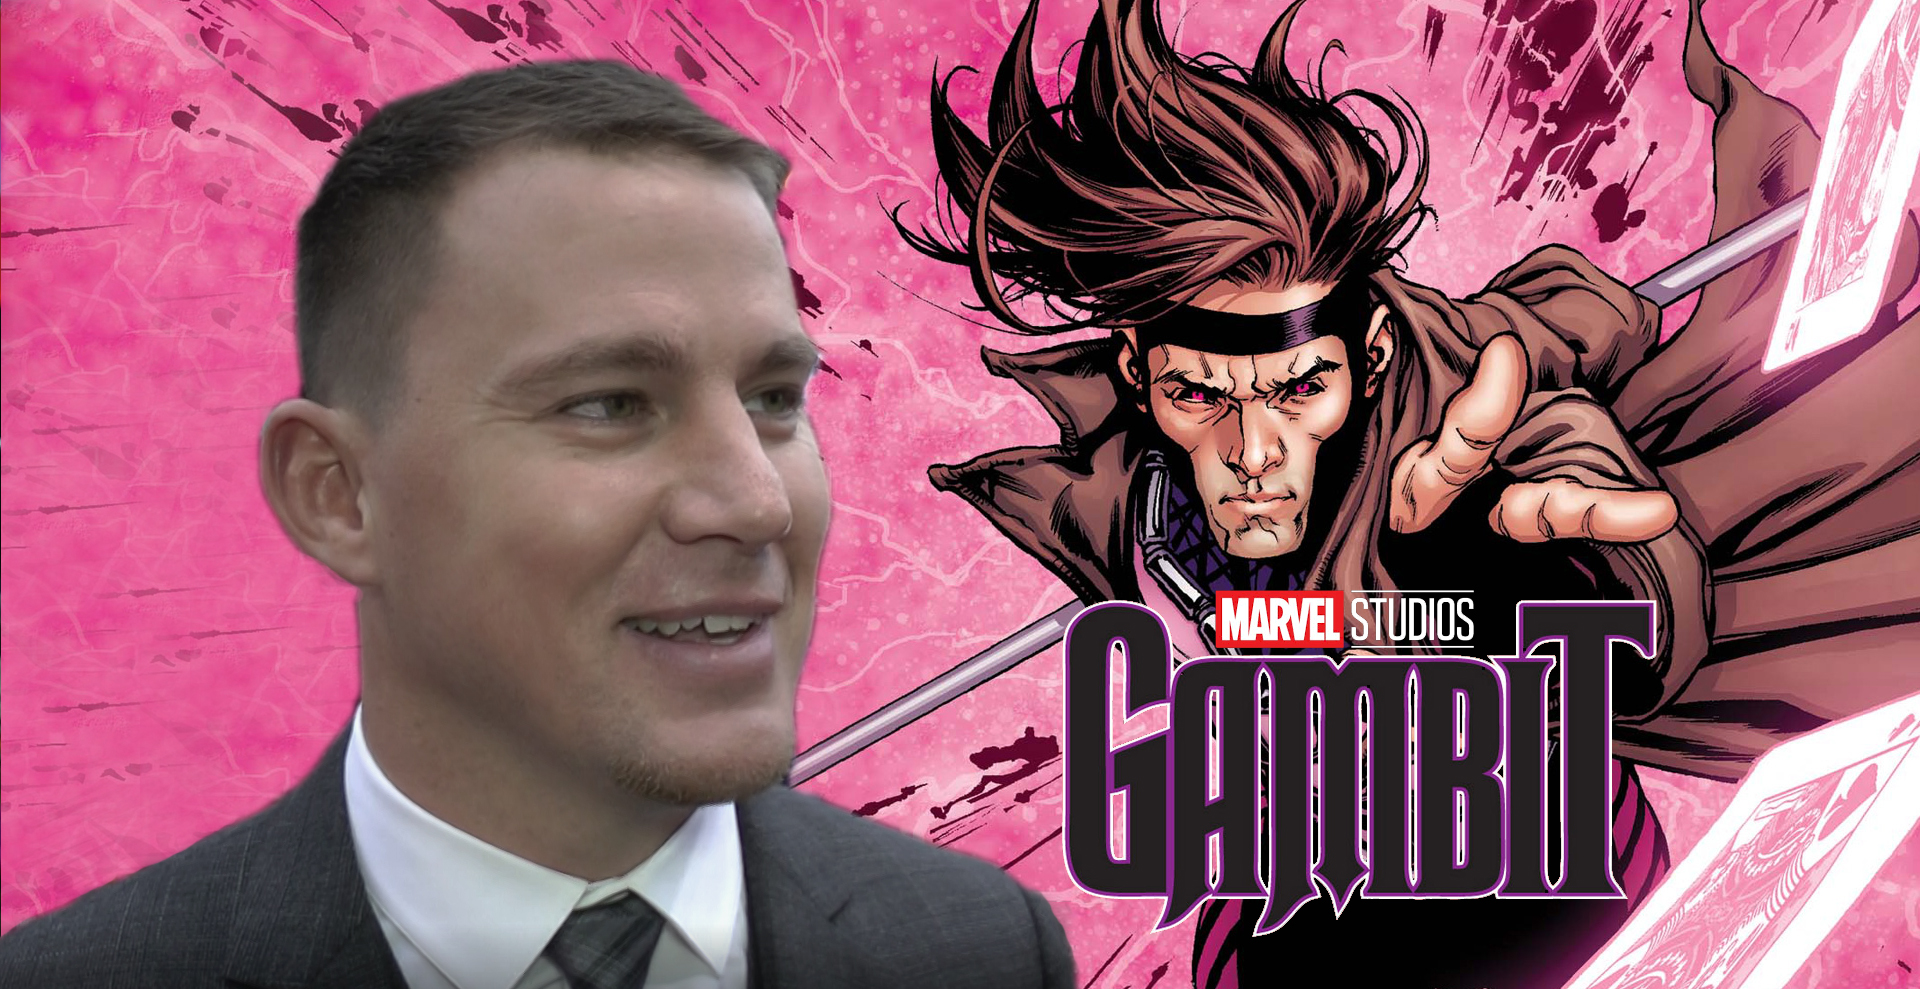 Channing Tatum's GAMBIT Movie Could Finally Be Moving Forward